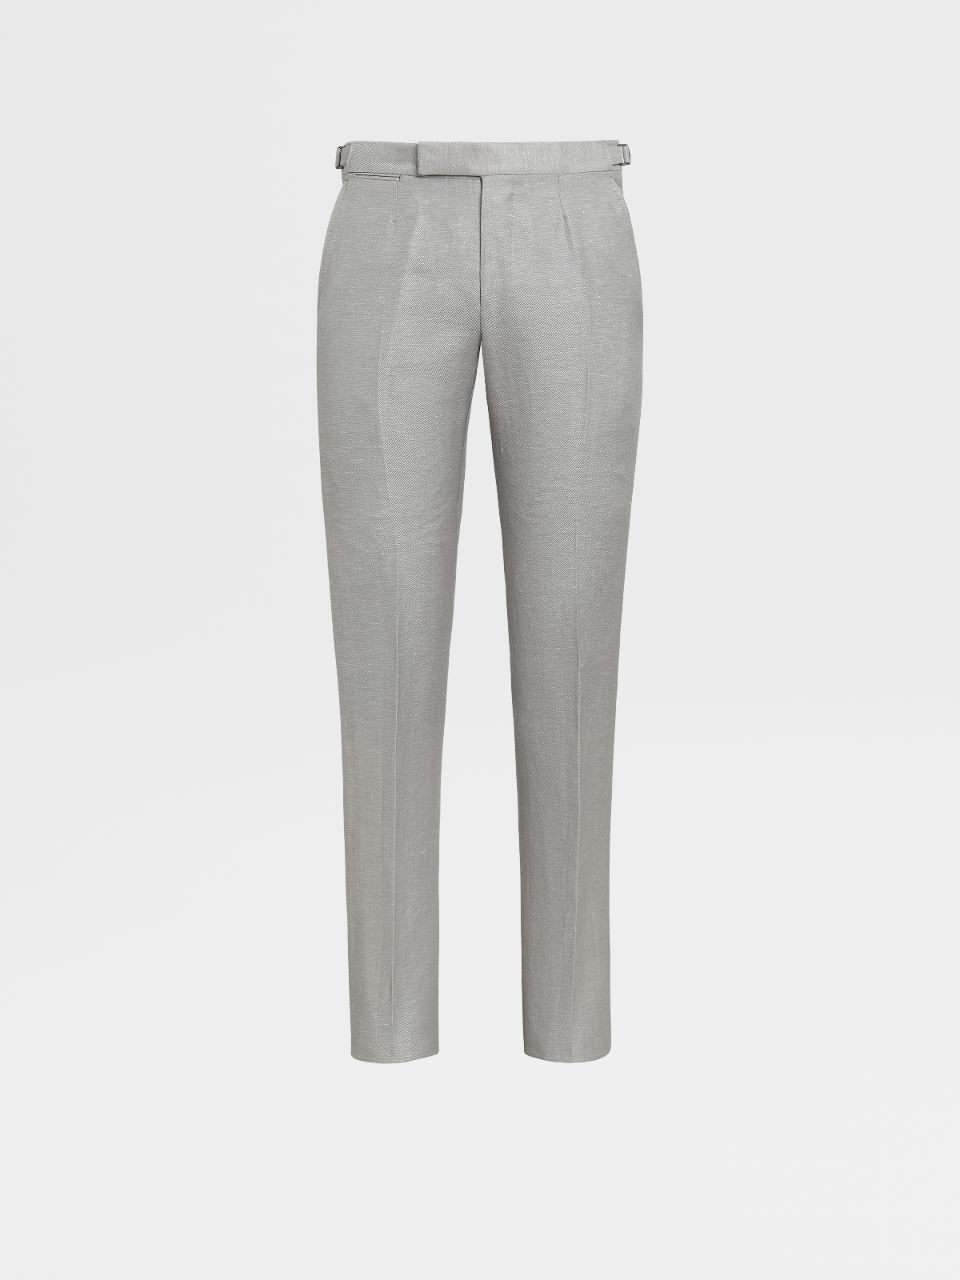 Wool And Linen Pants